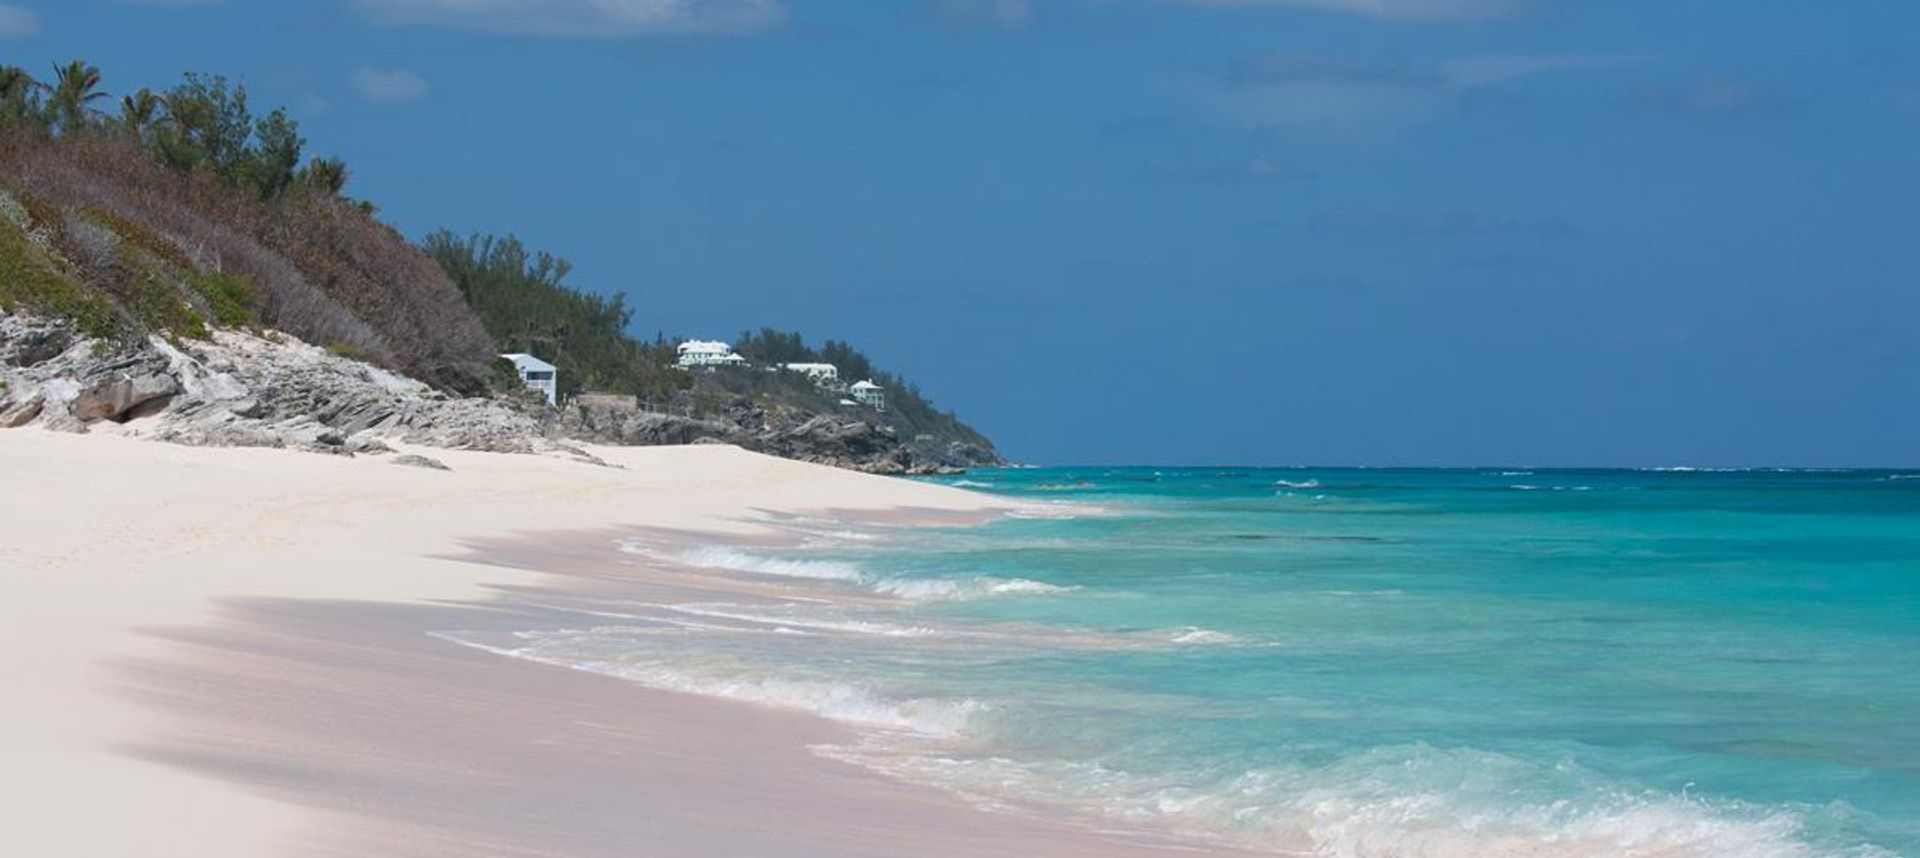 Bermuda islands (The Bermuda Department of Tourism)